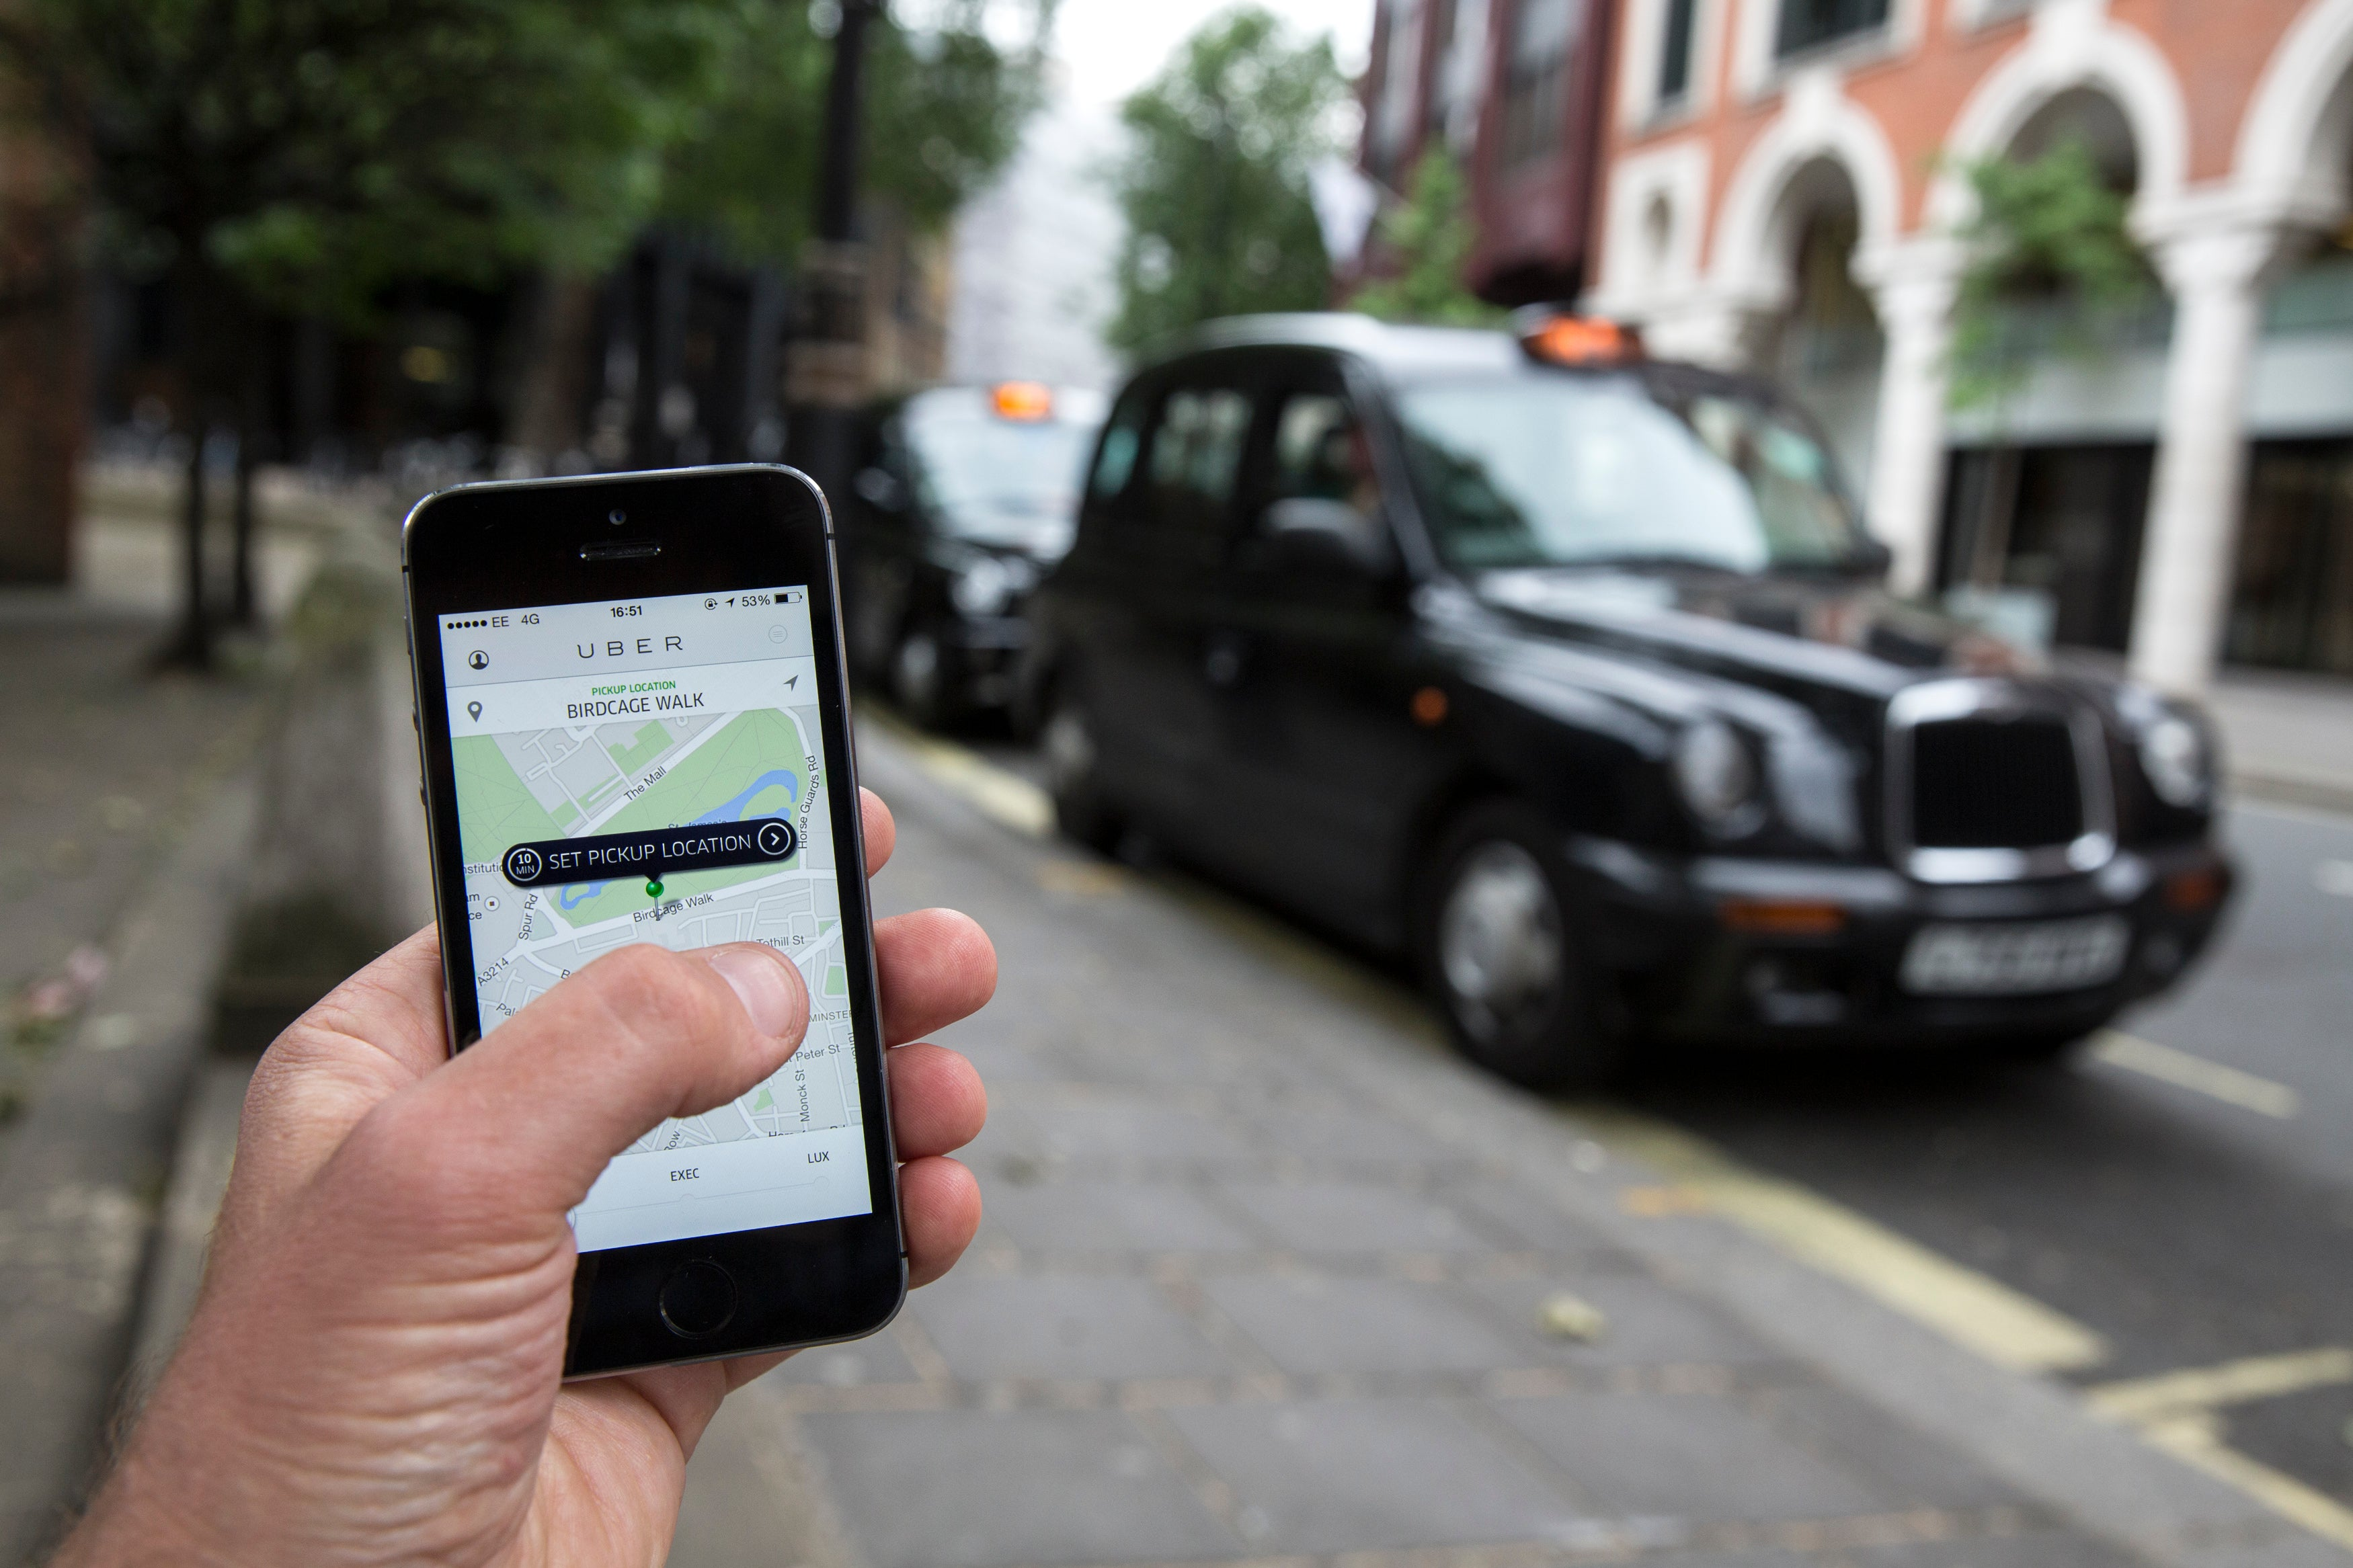 European Union to Uber: You're a Transportation Firm, Not Digital Company